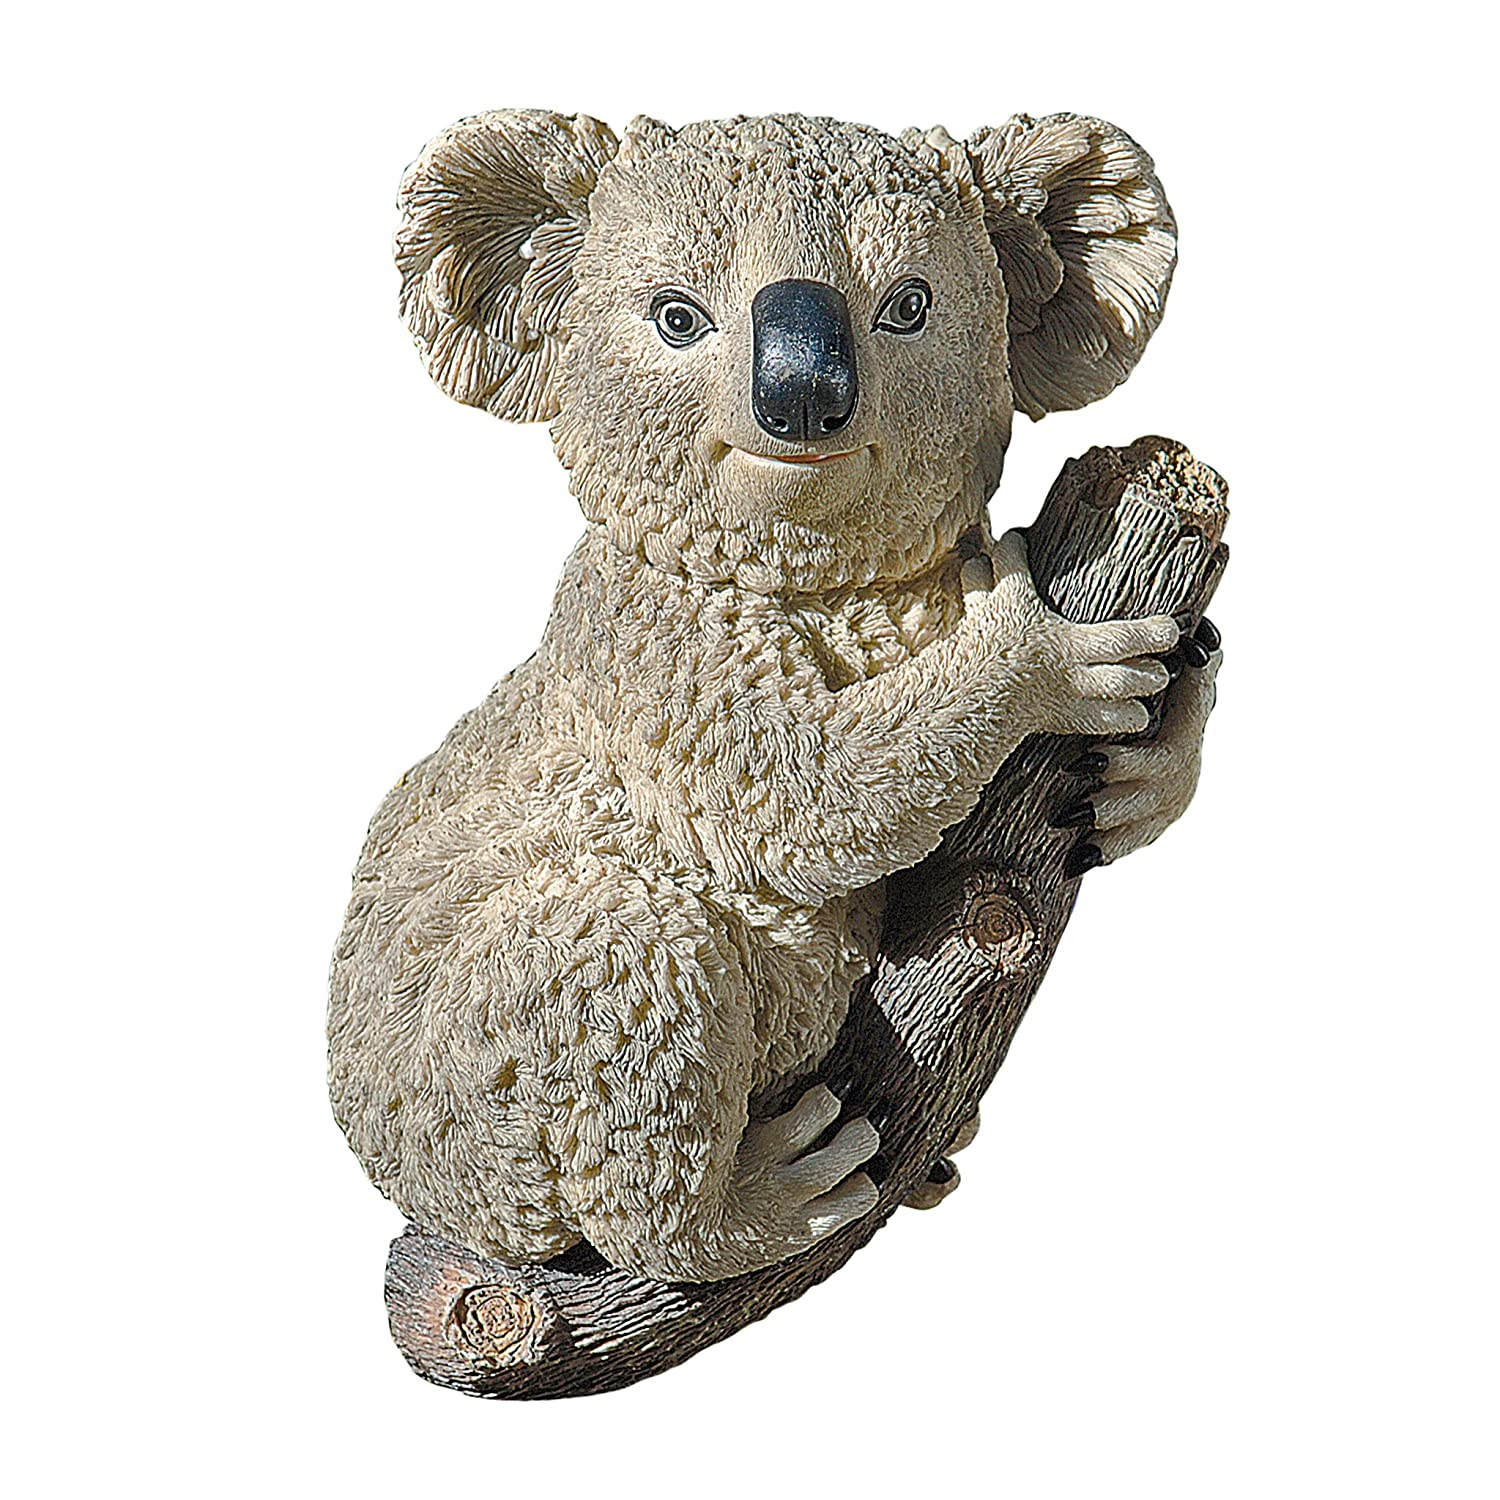 Design Toscano Kouta, the Climbing Koala Sculpture -Set of 2 NG934884